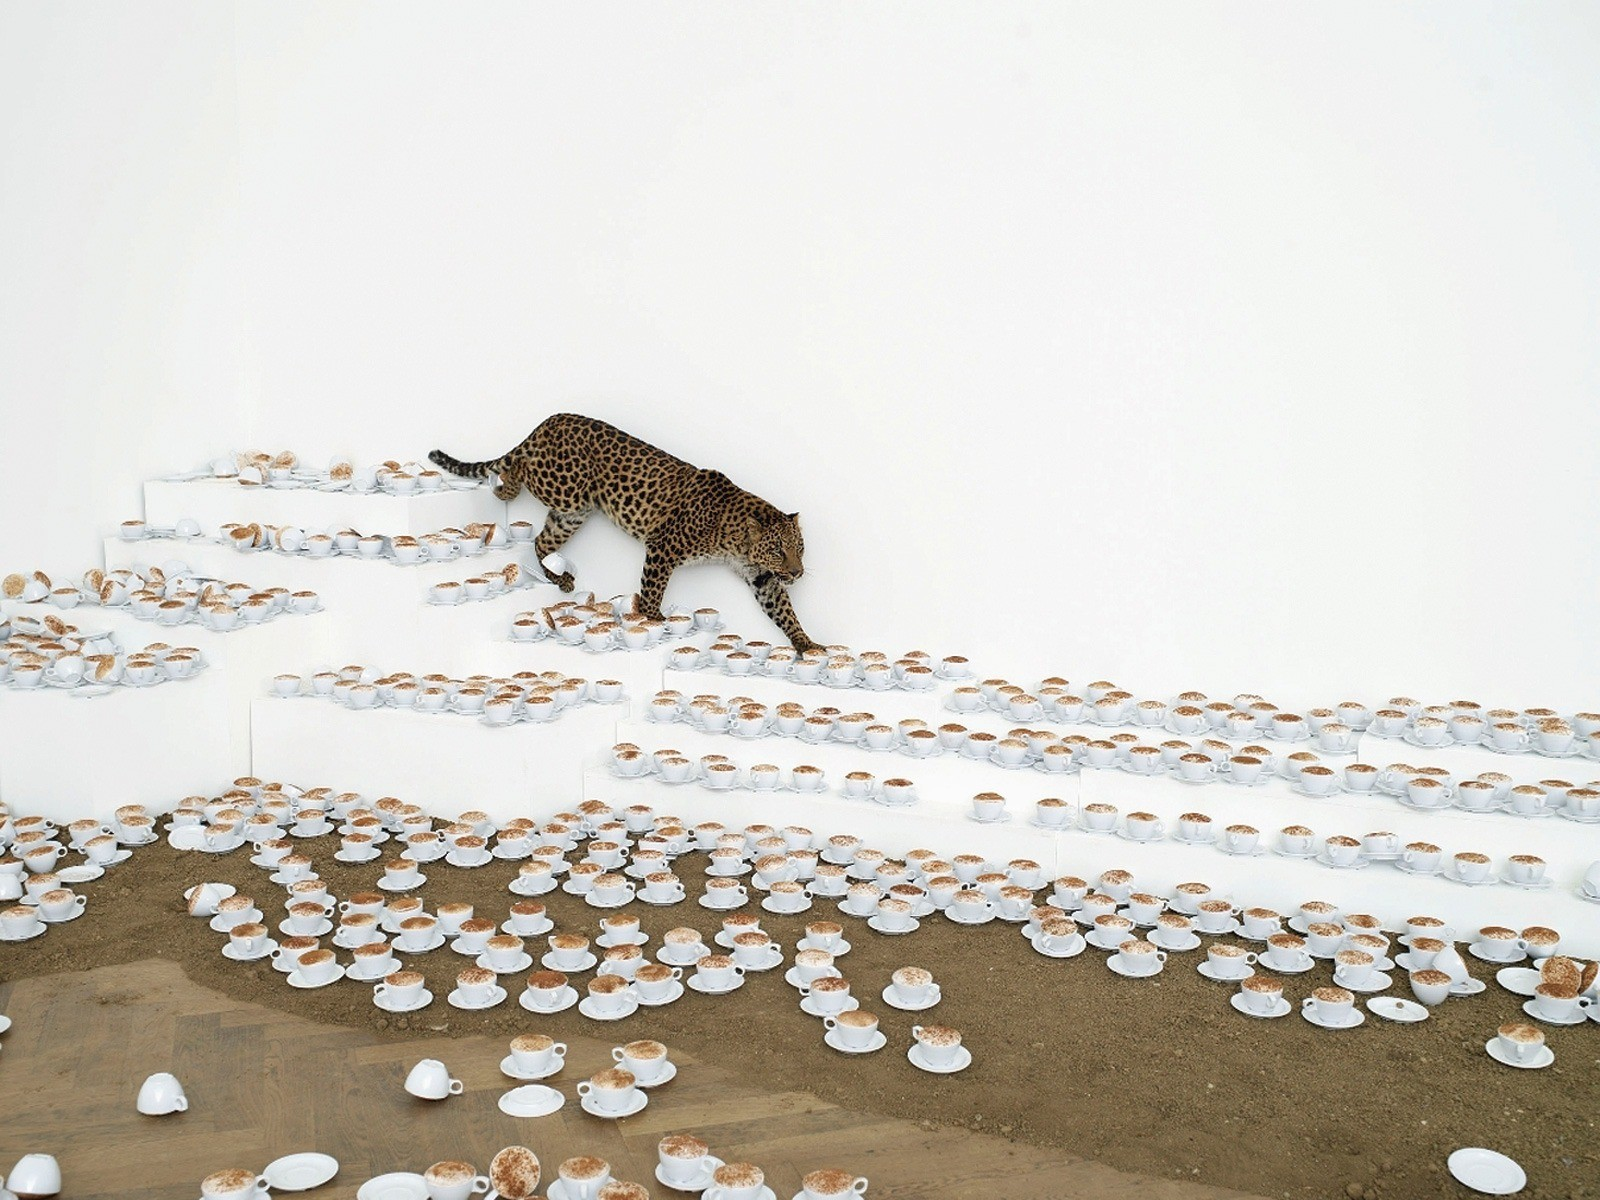 Paola Peewee. One cup of cappuccino, and I will go, 2007 Type of installation at the Art Museum Basel, Germany 3000 cups of coffee, live leopard. The image is provided by the author